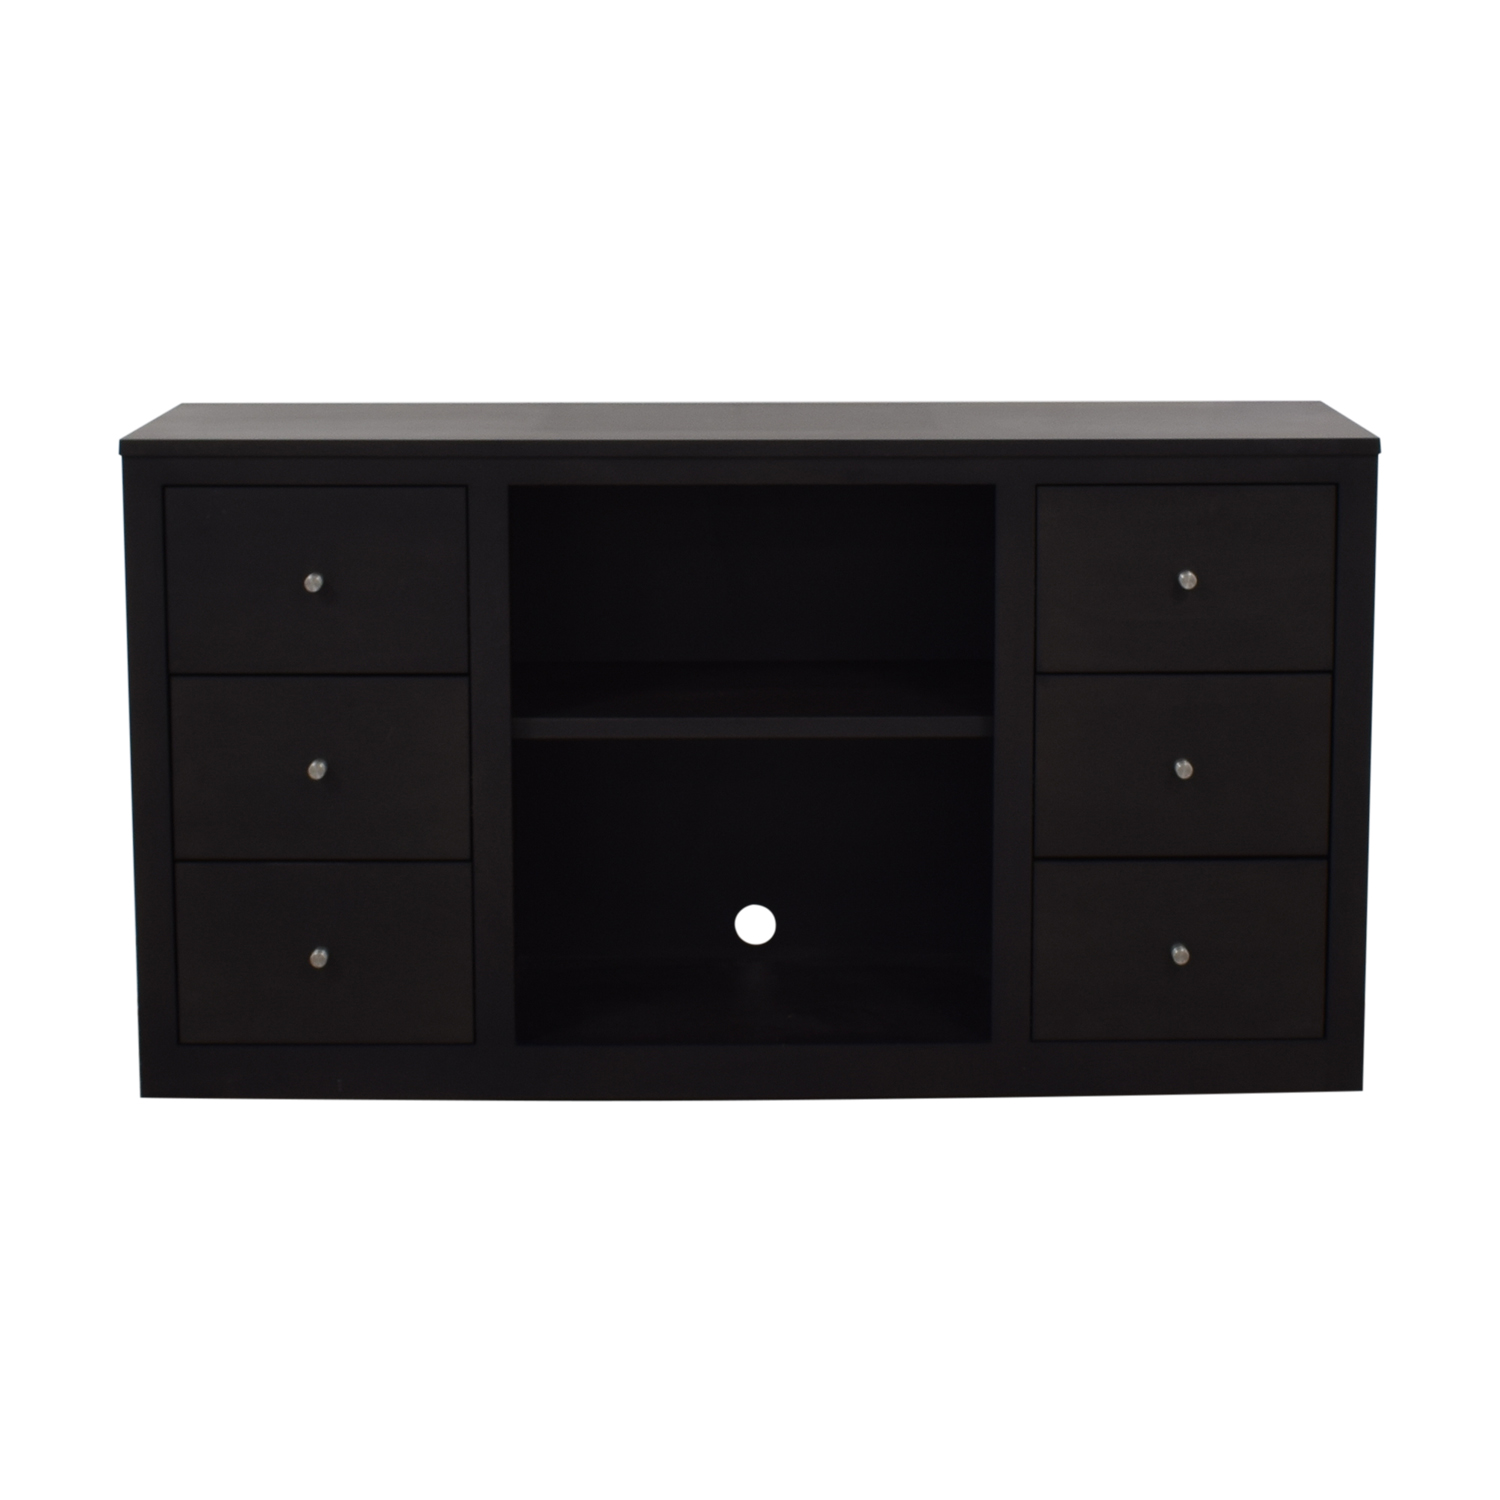 shop Room & Board Woodwind Maple With Charcoal Stain Media Cabinet Room & Board